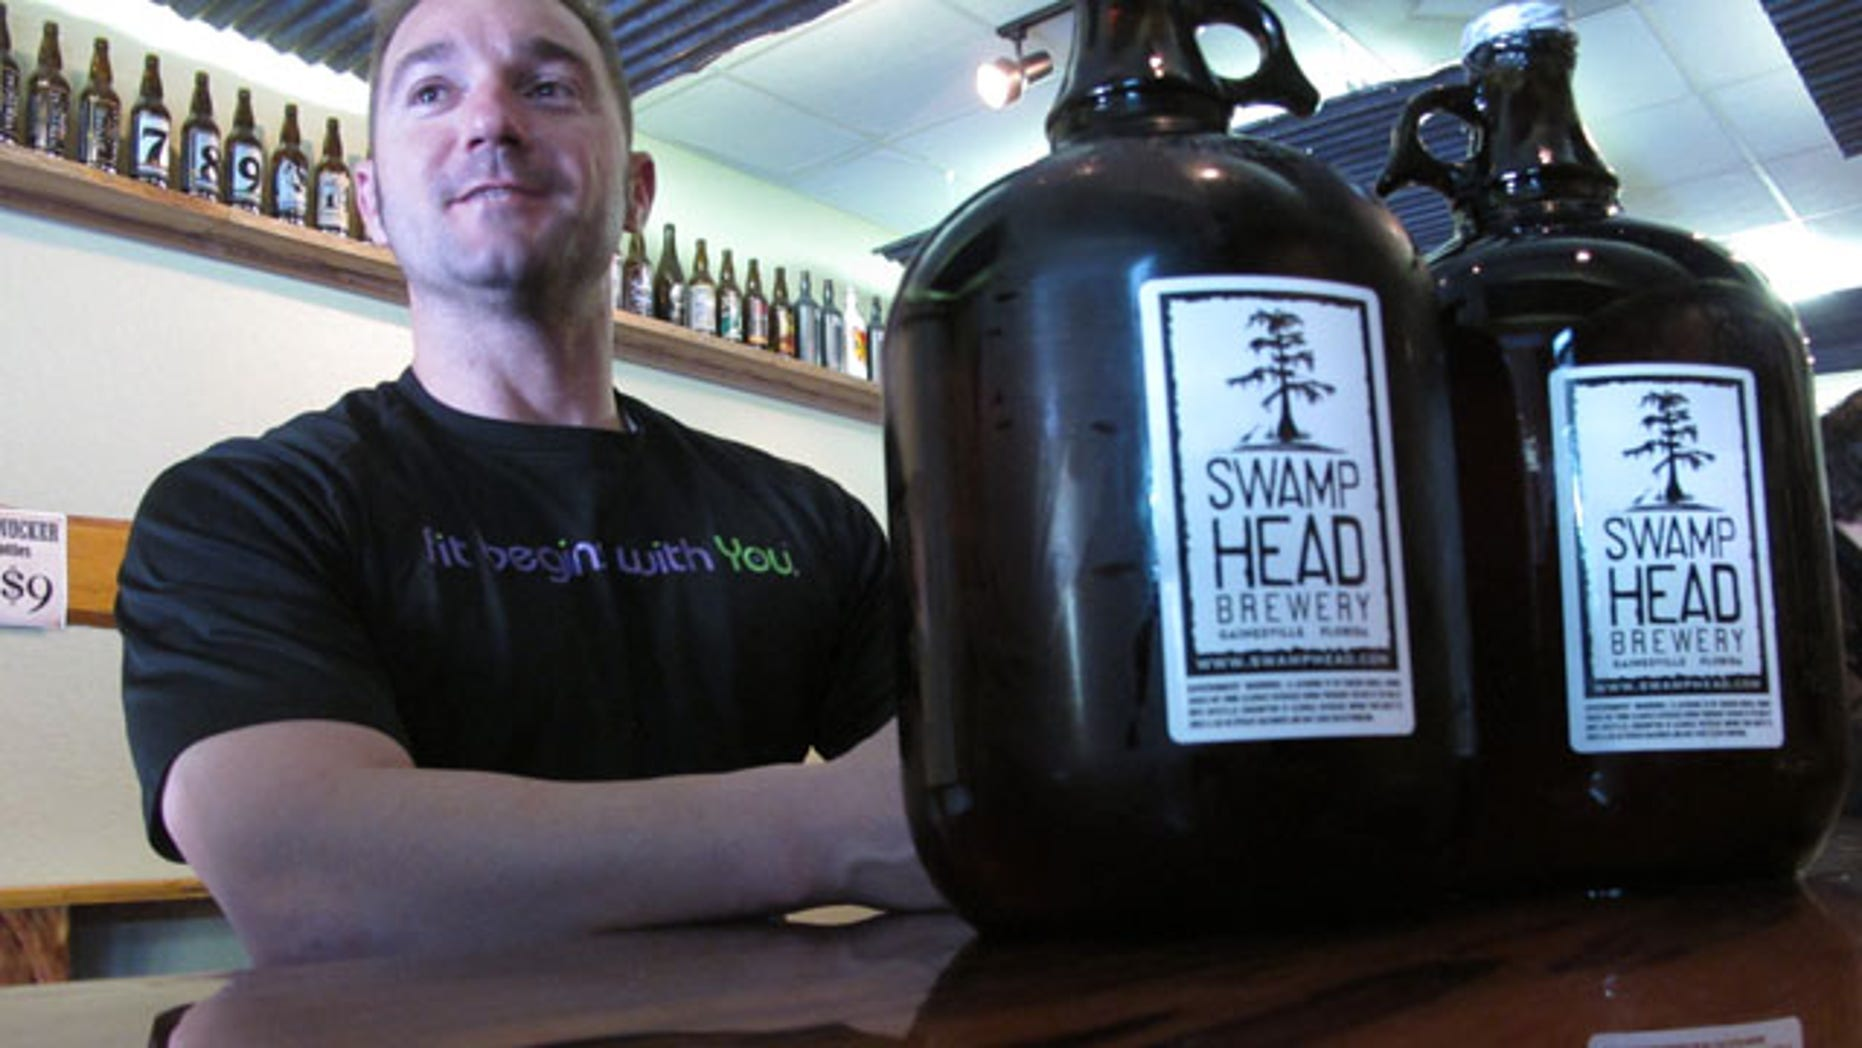 Mar. 29, 2013: Patron Adam Rudell, of St. Petersburg, Fla., sits with two gallon-sized jugs of beer, known among beer enthusiasts as growlers, at the Swamp Head Brewery in Gainesville, Fla.